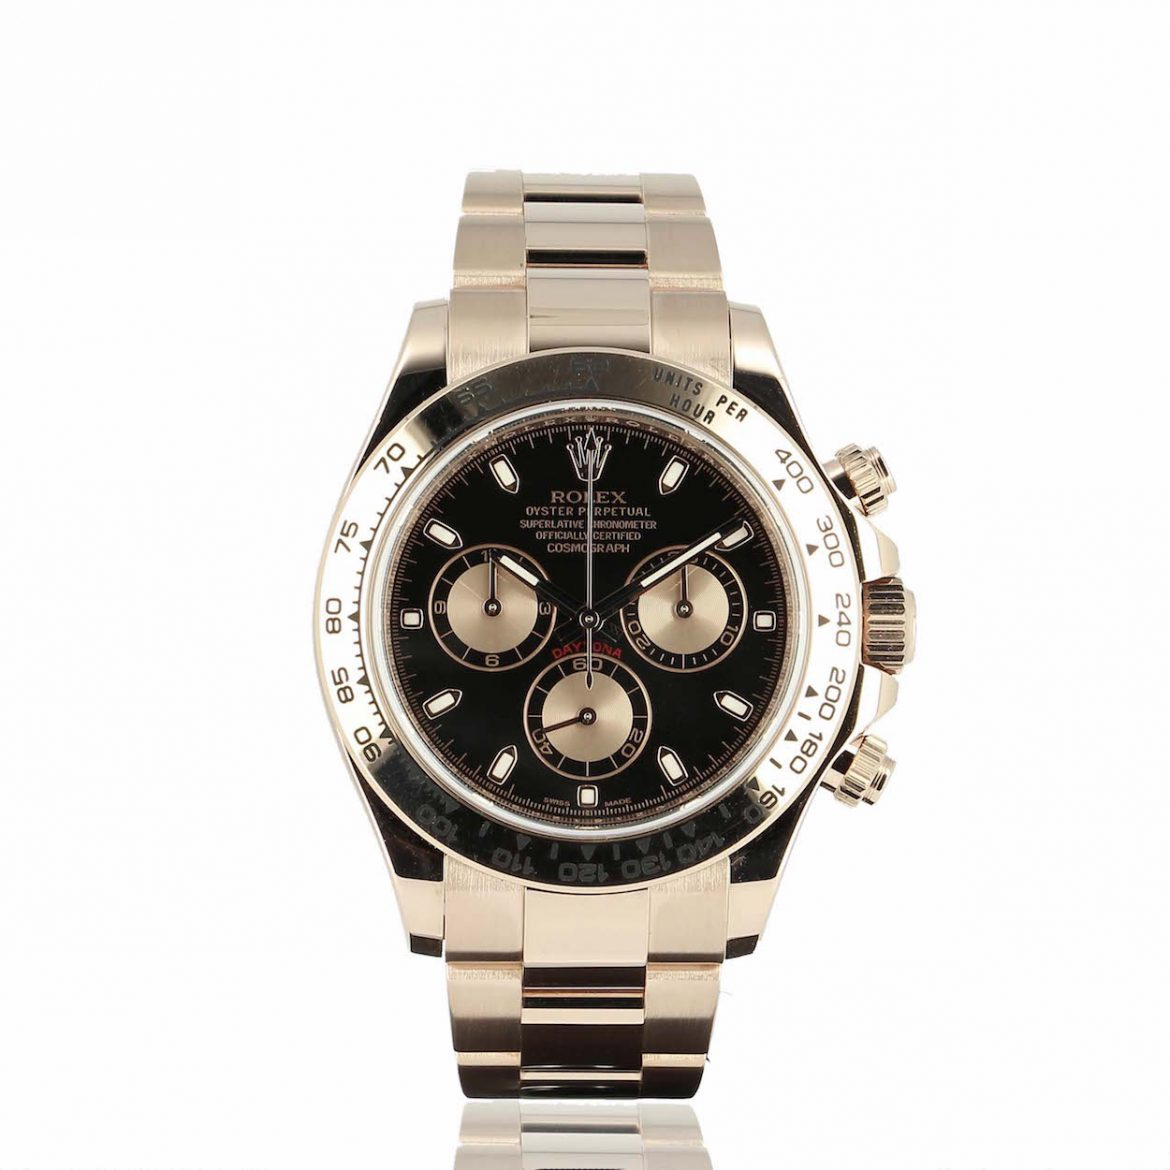 Montre Rolex Daytona or rose - Les Montres Collector